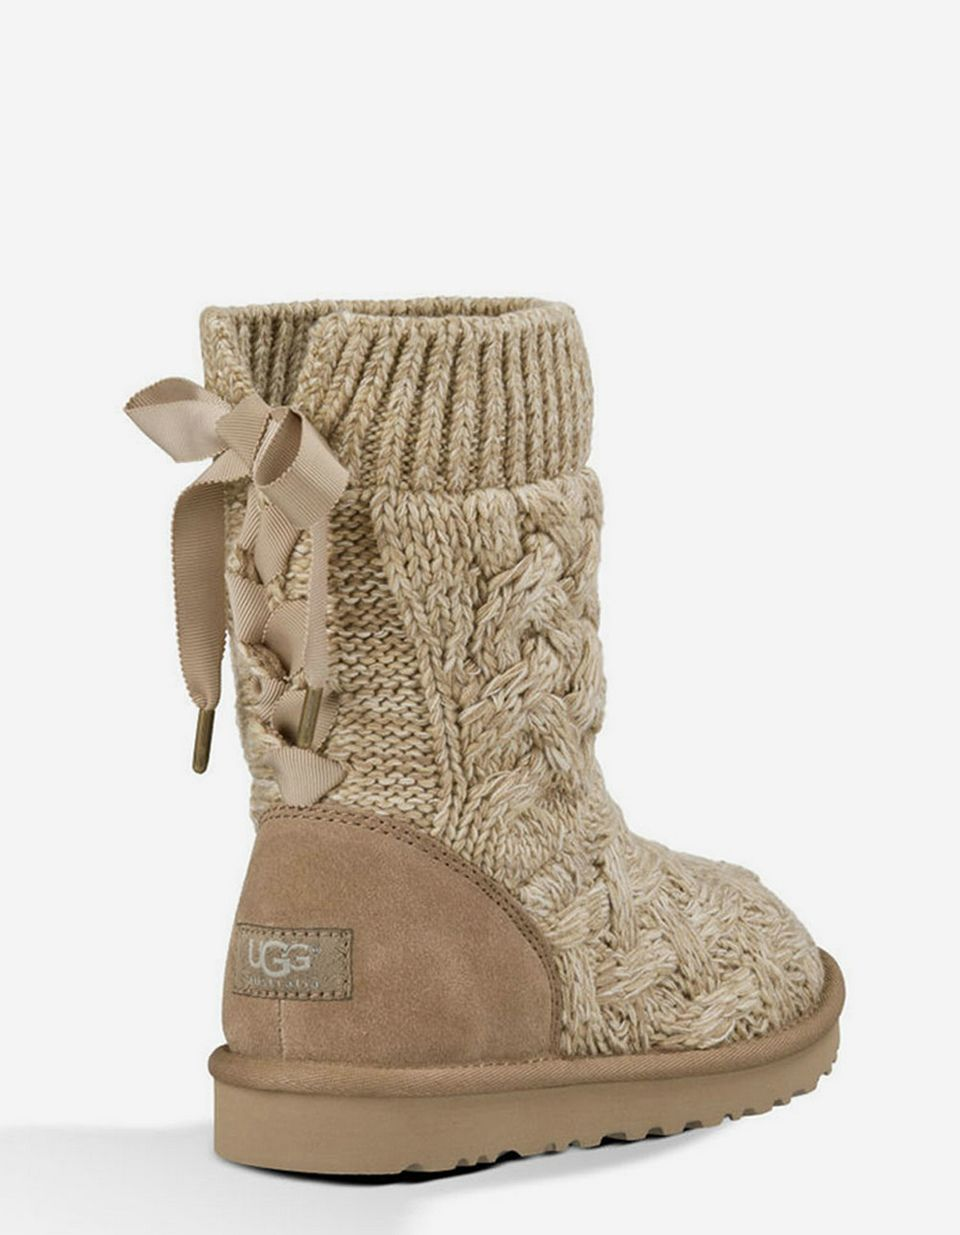 ef9cc138e5f Pin by Savannah Arroyo on Shoes in 2019 | Fashion, Boots, Ugg boots